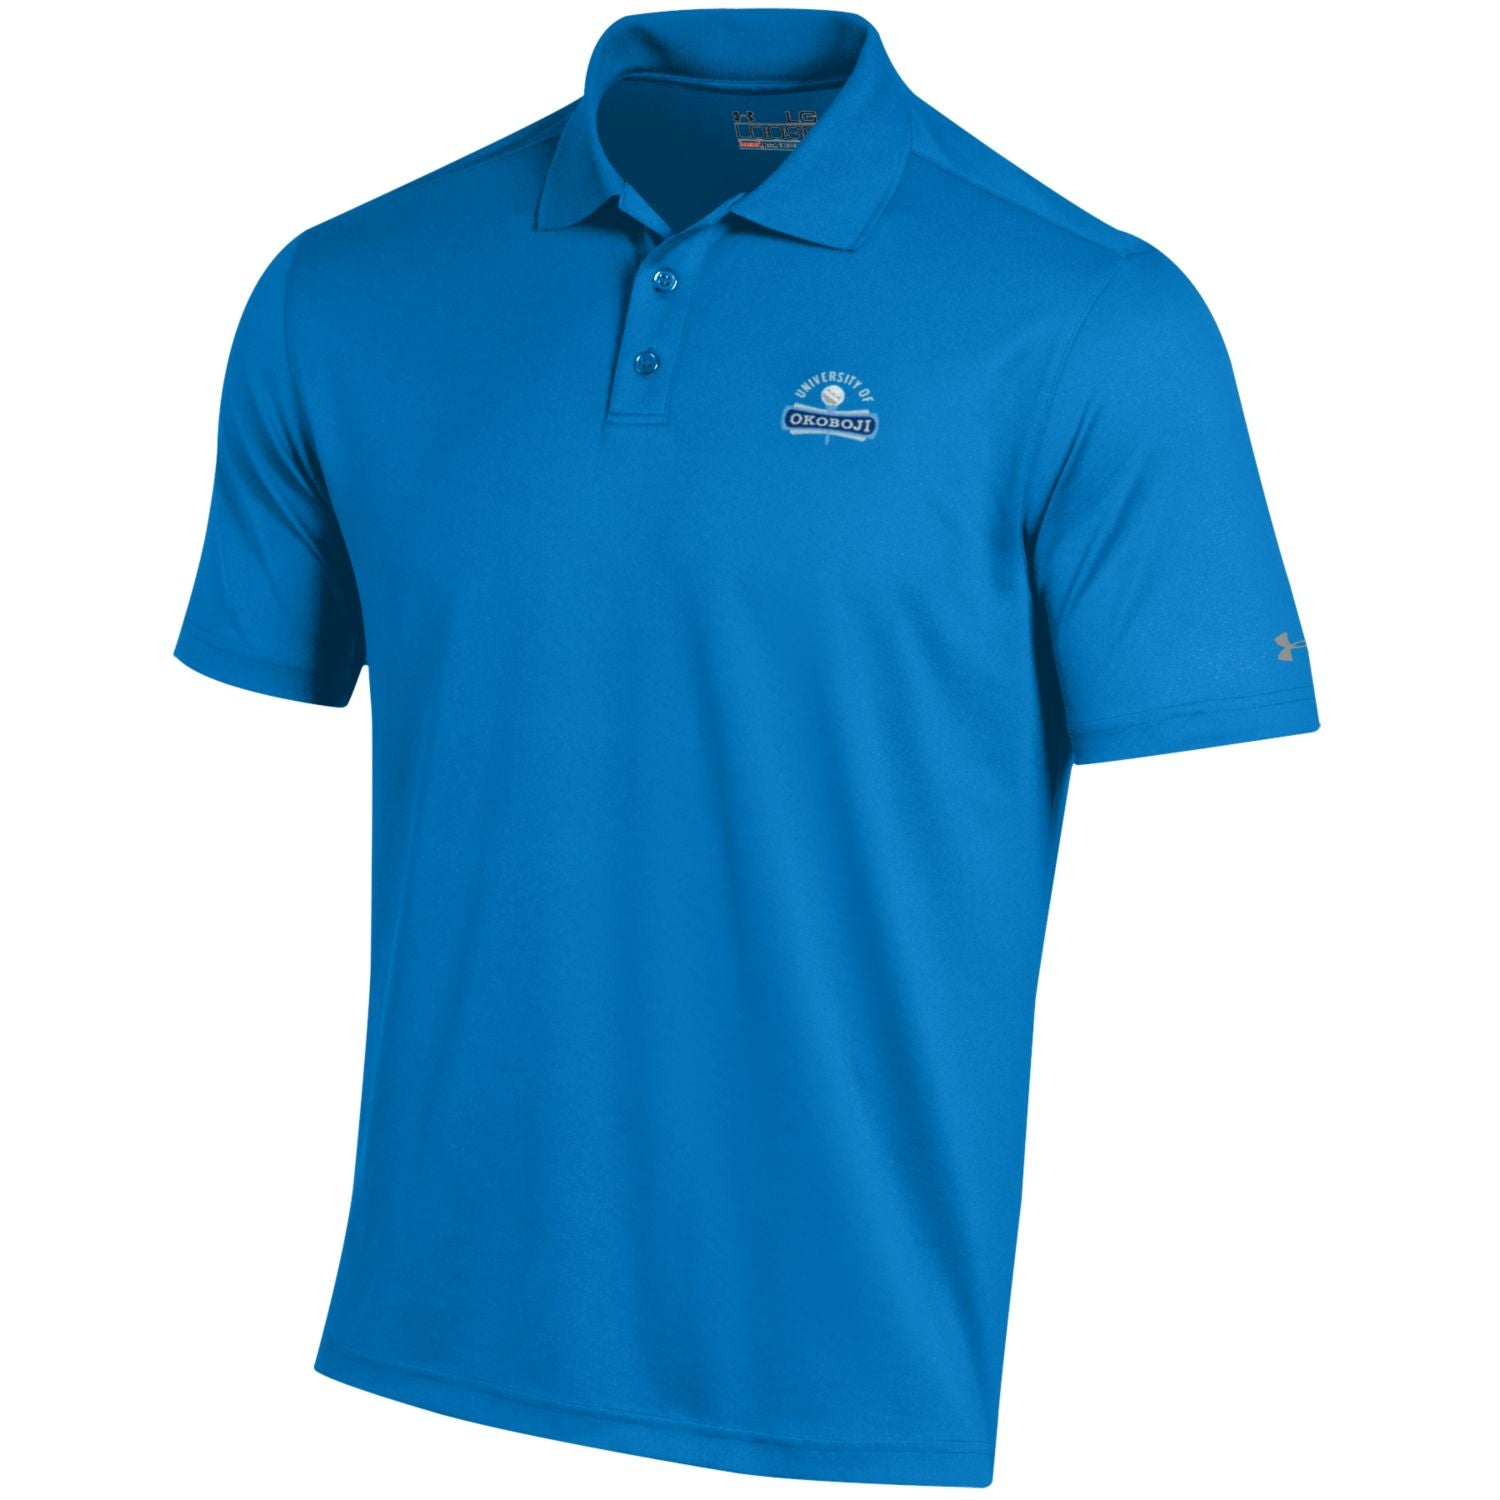 Under Armour Performance Polo - Blue - The Three Sons 3f0365407